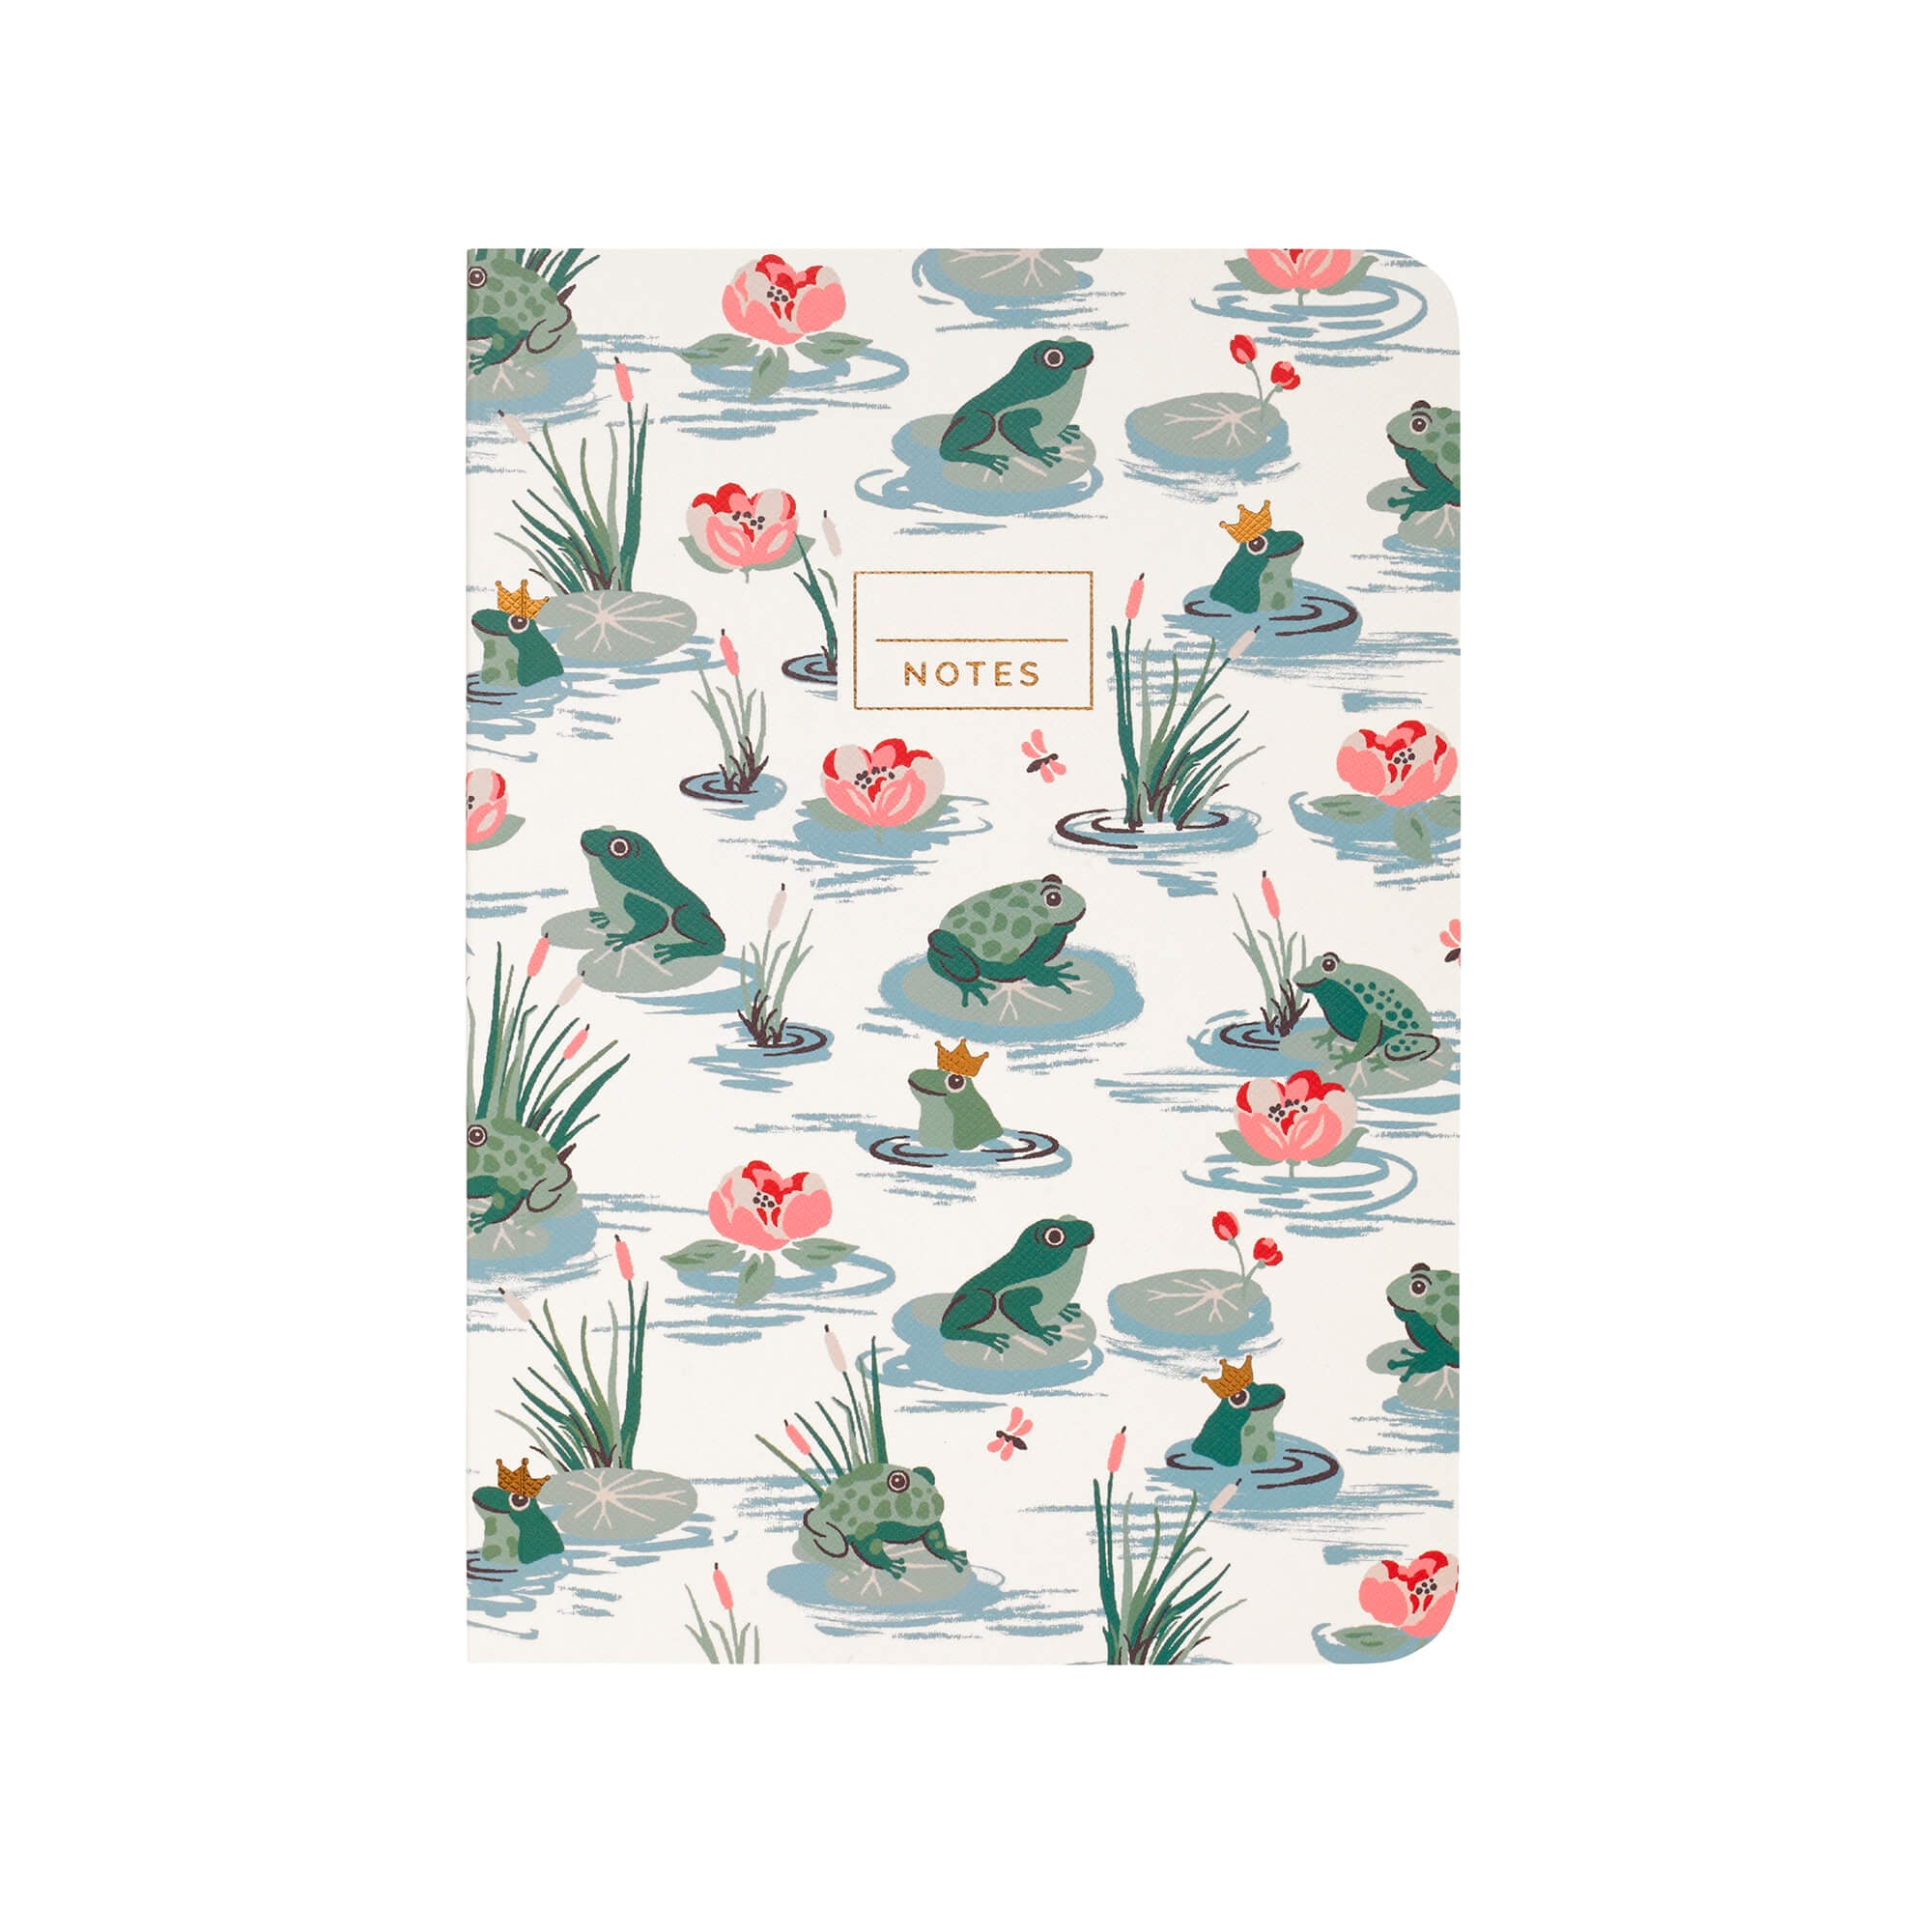 Image of Cath Kidston Frogs A5 Notebook, Cream